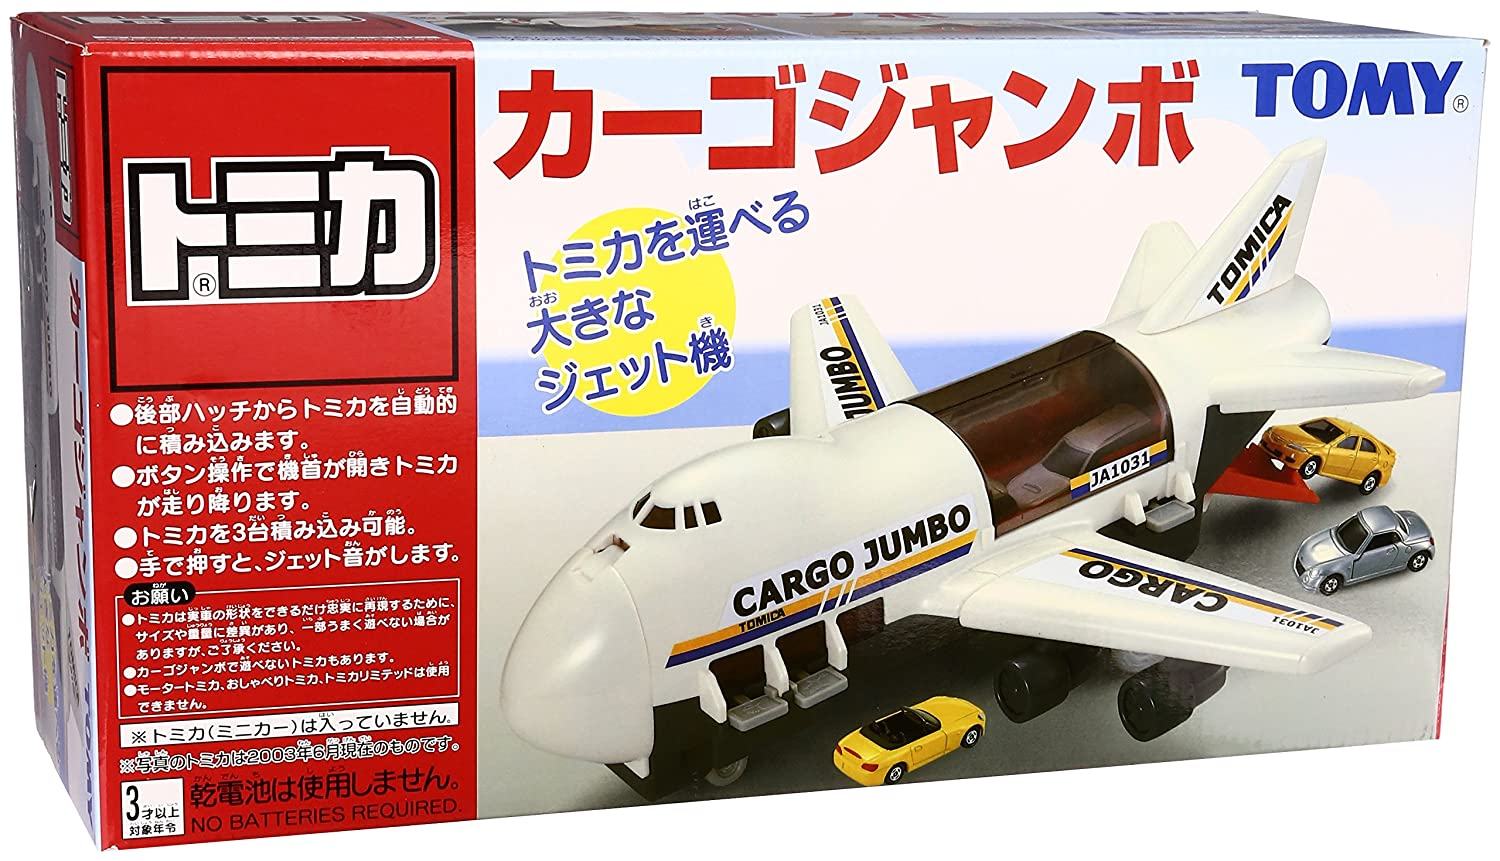 Tomica World Cargo Jumbo (Japan) (japan import)